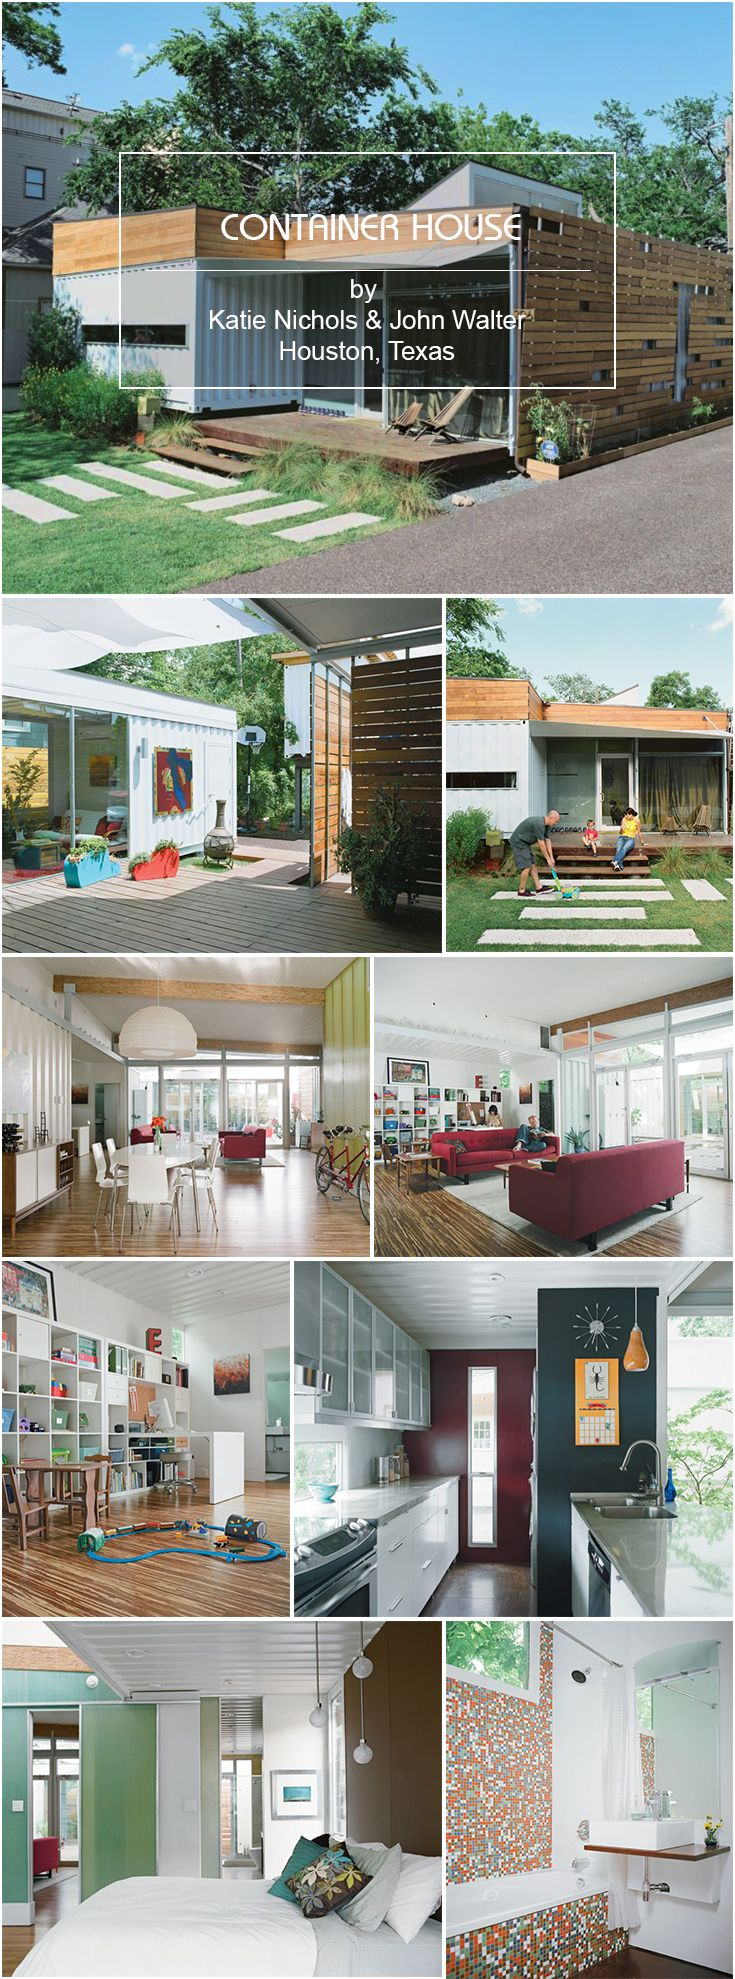 Container Container house Kate Nichols u0026 John